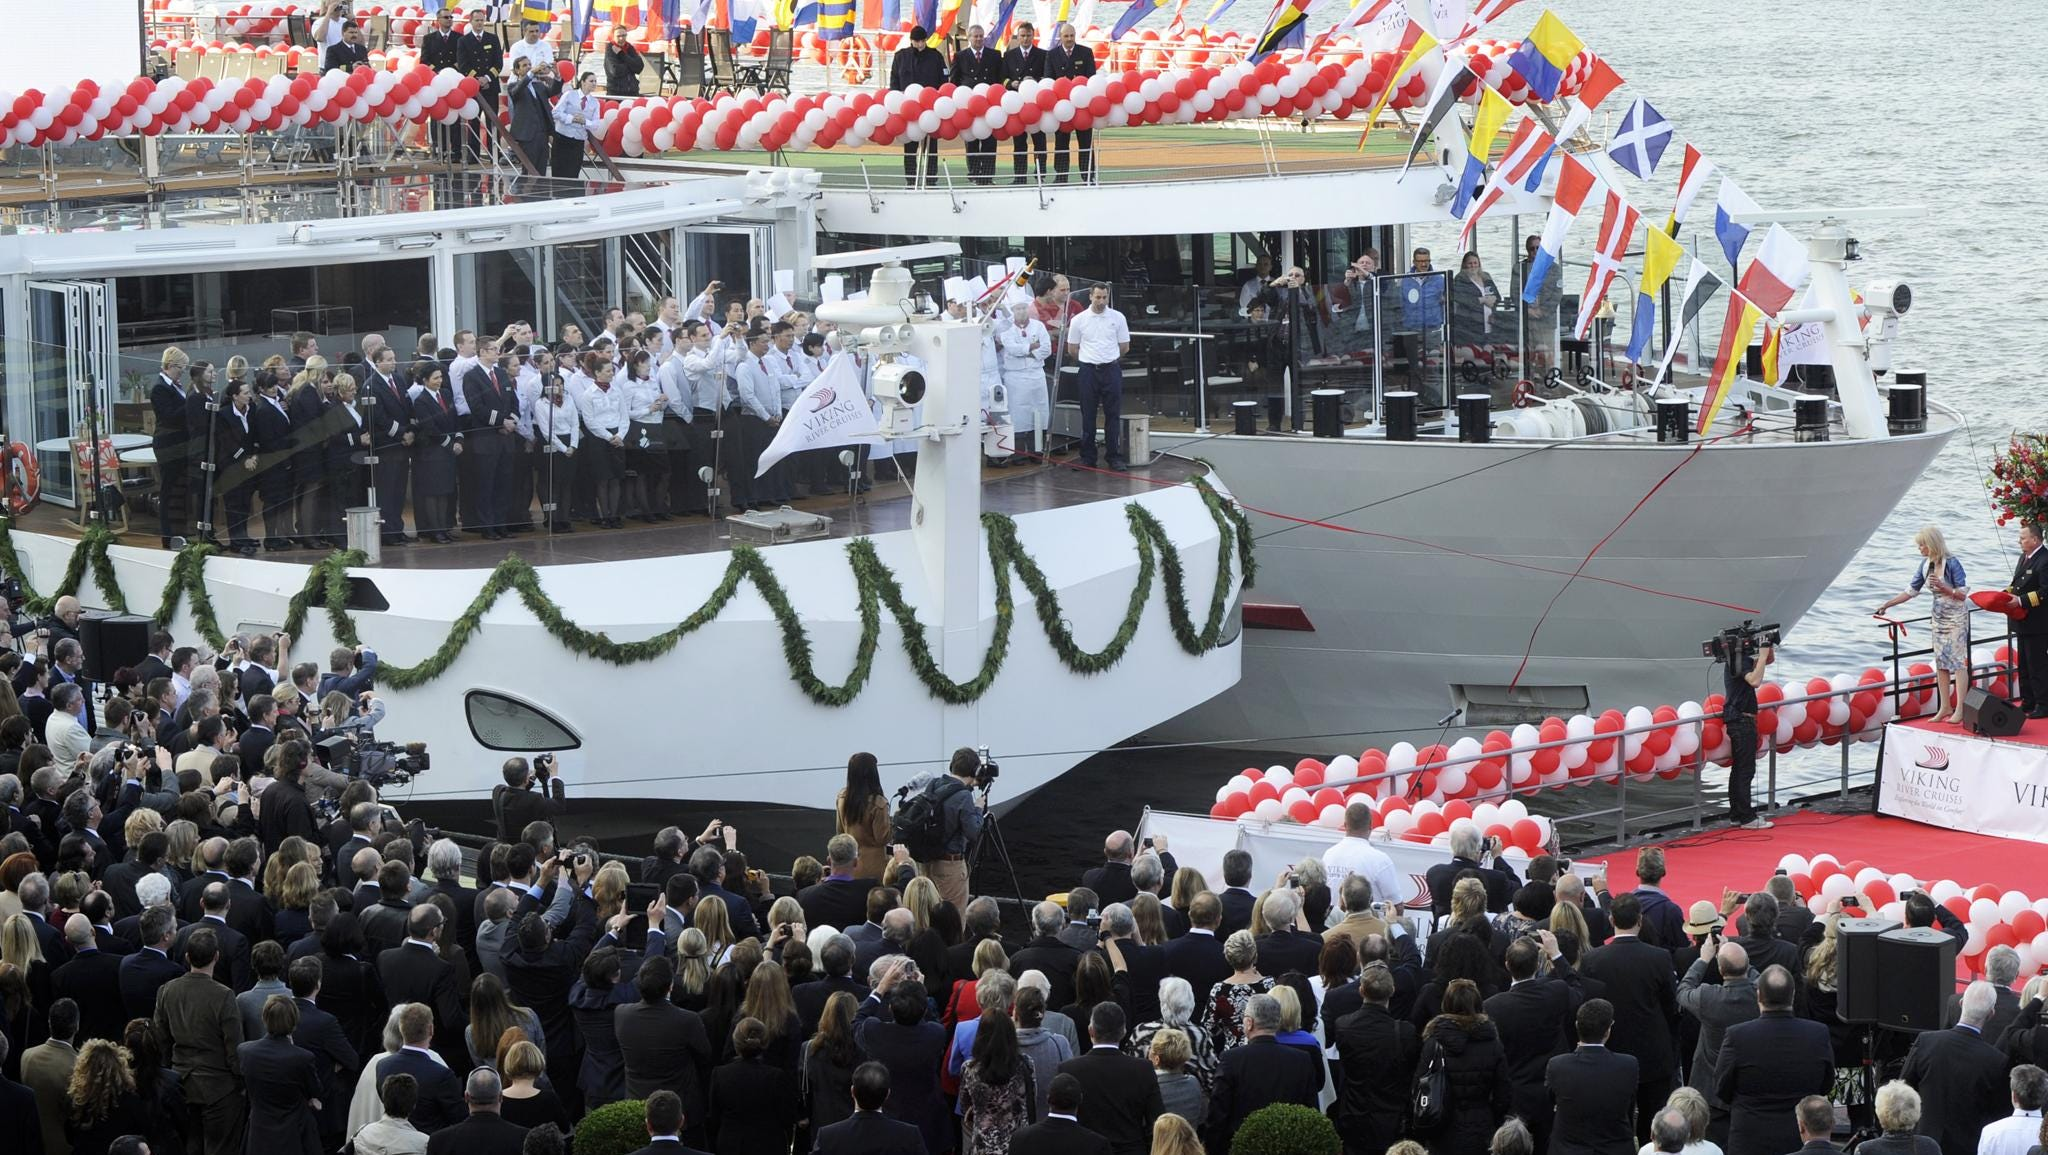 Shown here at its christening, the Viking Odin measures 135 meters long, the maximum length a vessel can be and still fit through the locks of Europe's central waterways. It has three passengers deck and 95 cabins.